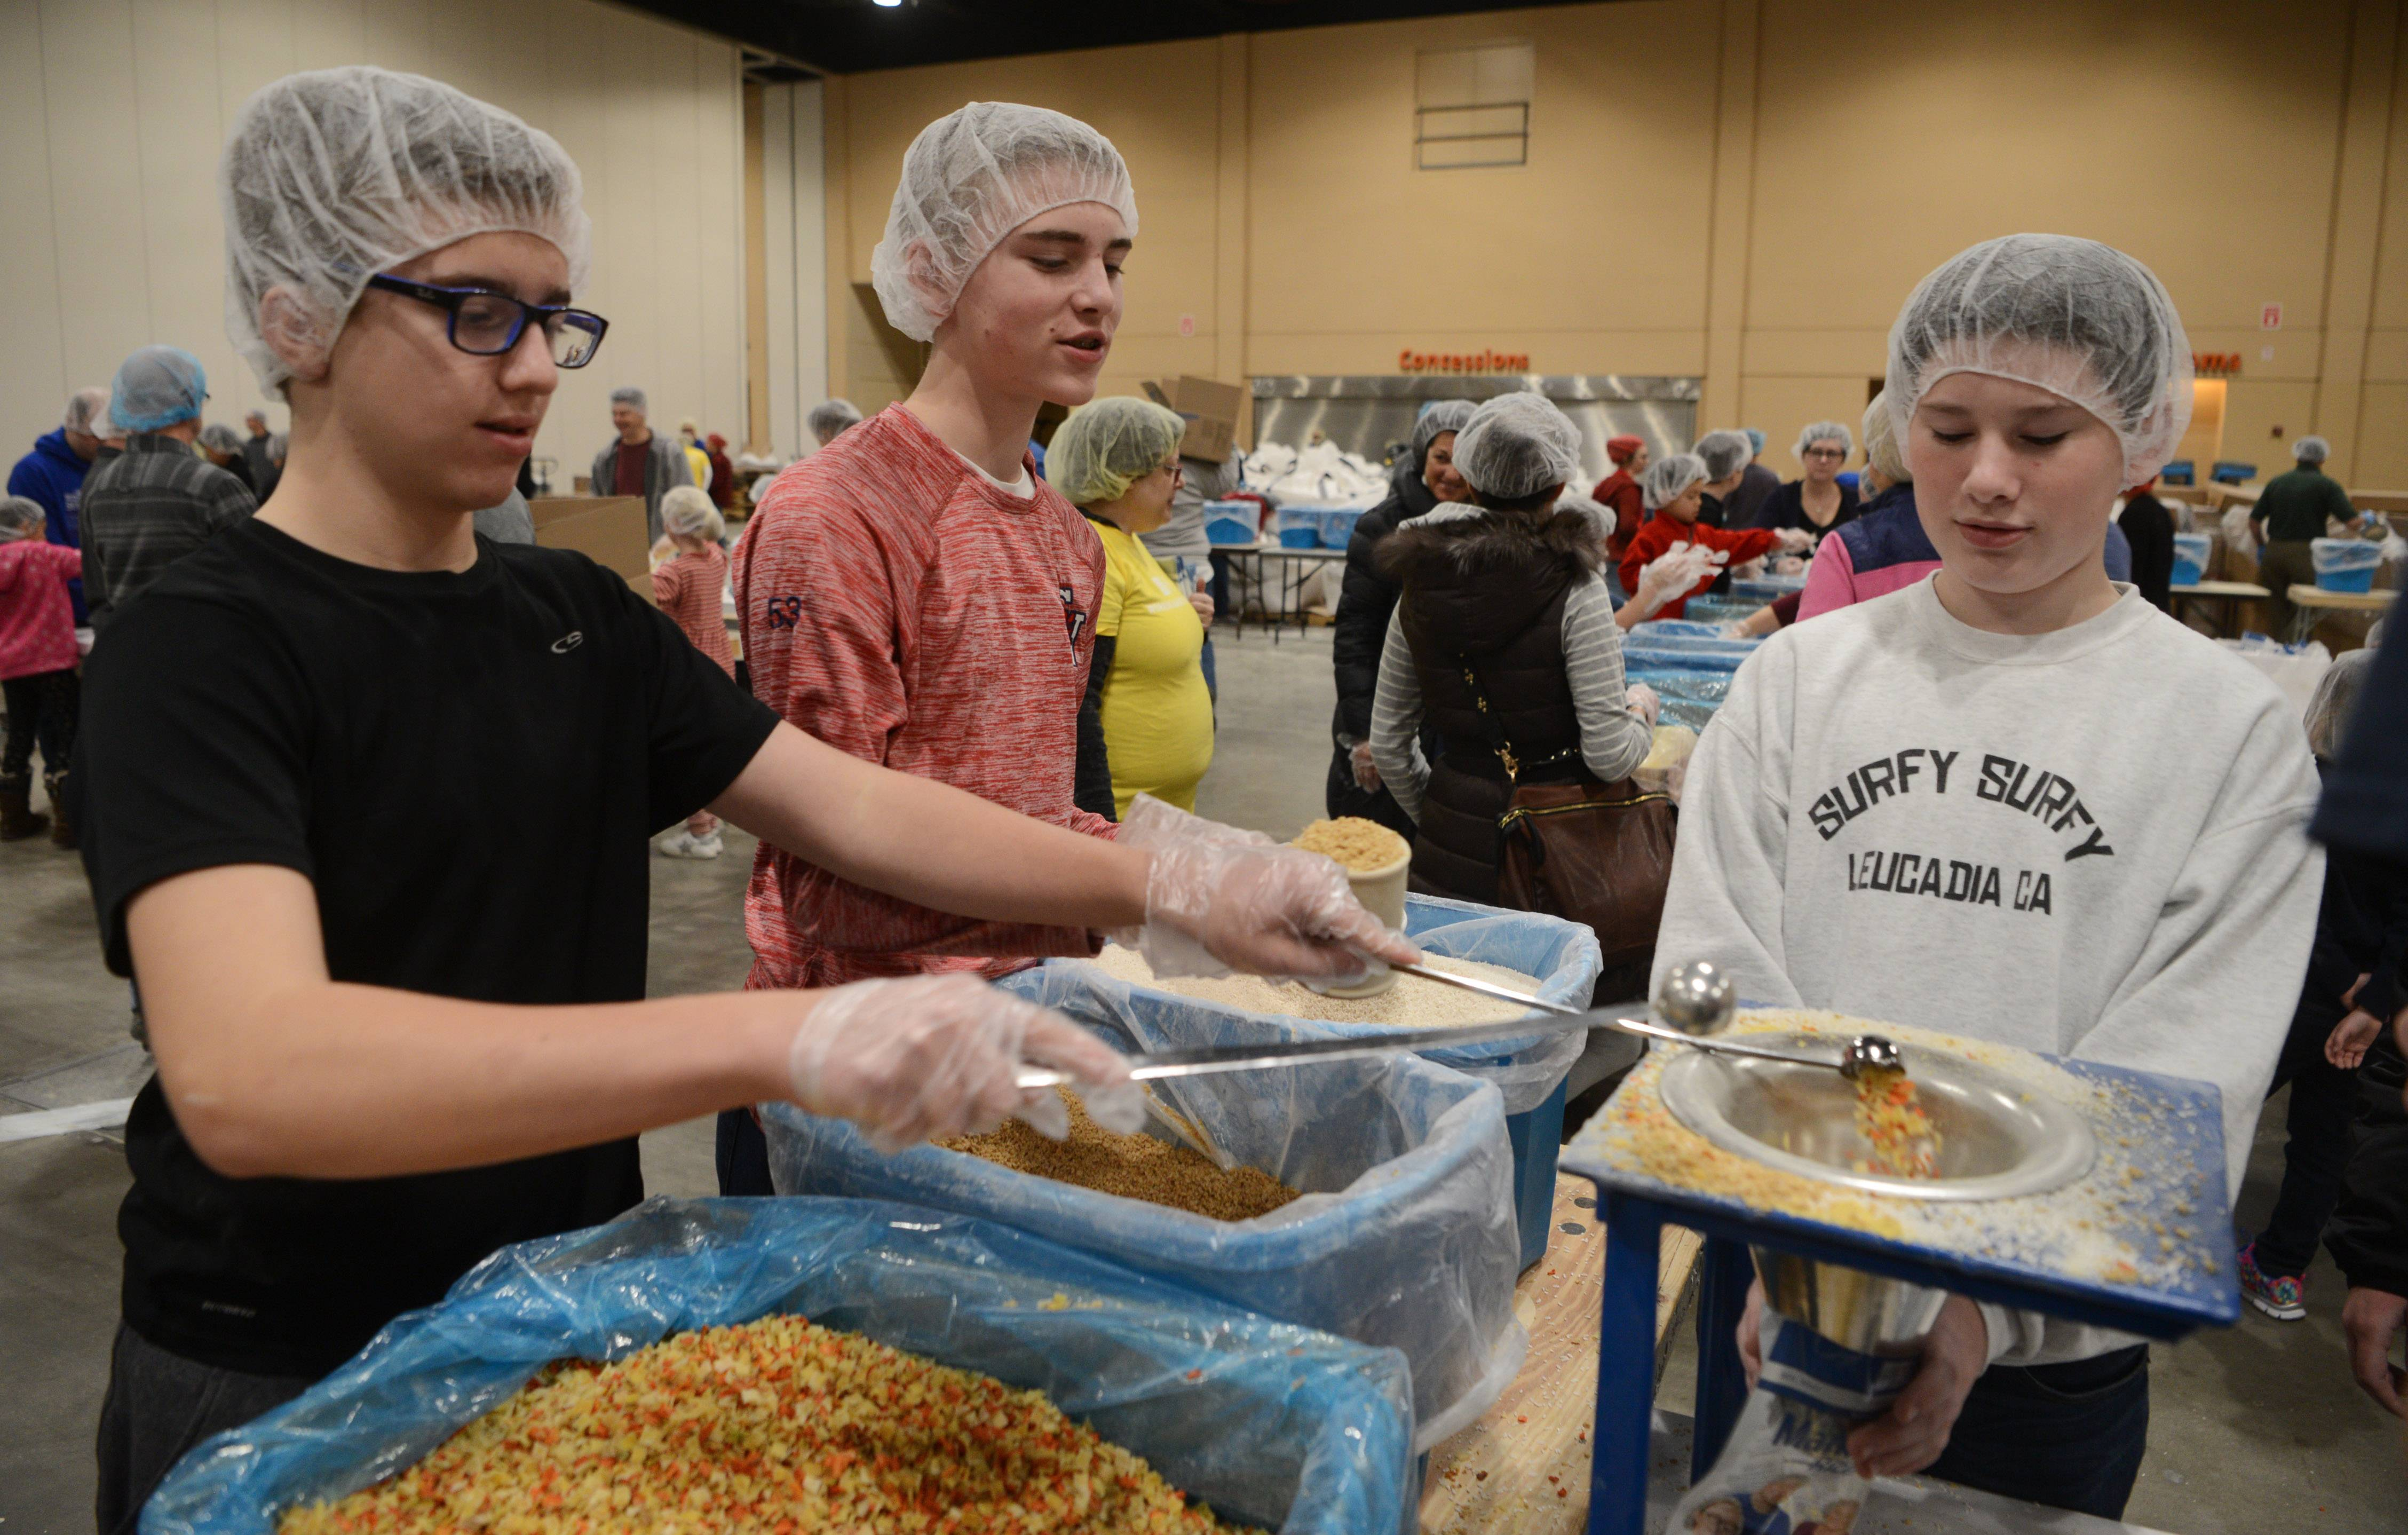 Left to right, Joseph Giuliani and Sean Bosshart, both 13-year-old eighth graders at St. Hubert Catholic in Hoffman Estates, and Sean Kenny, 14, from Our Lady of the Wayside School in Arlington Heights, help pack meals Sunday during the Hope Filled Holiday MobilePack event at the Renaissance Schaumburg Convention Center.